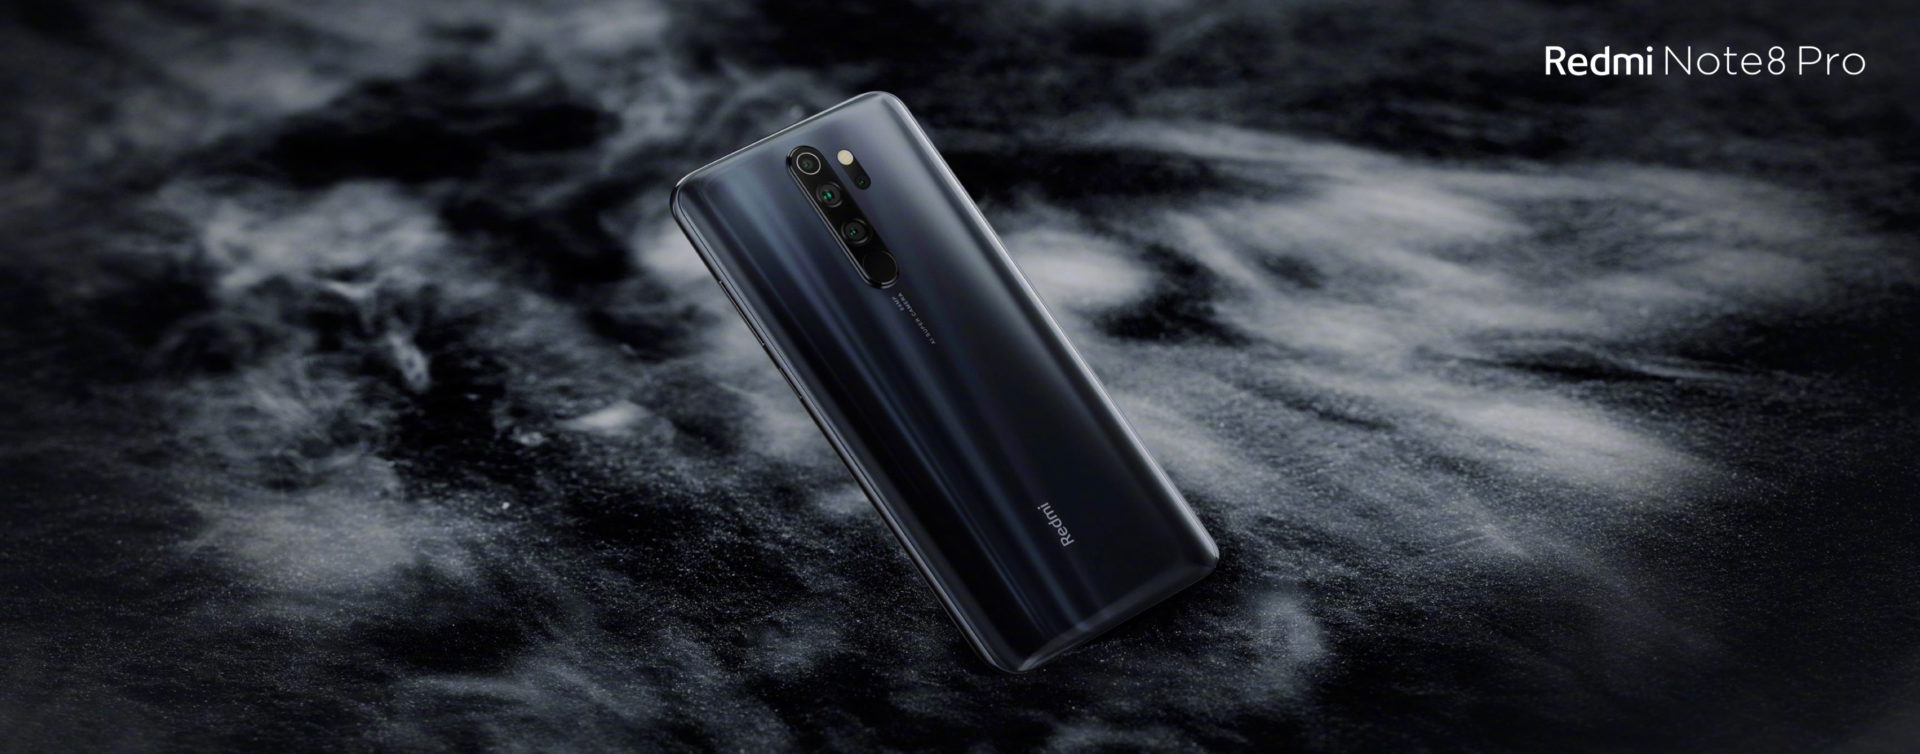 Redmi Note 8 Pro has Quad Cameras with 64MP Primary shooter